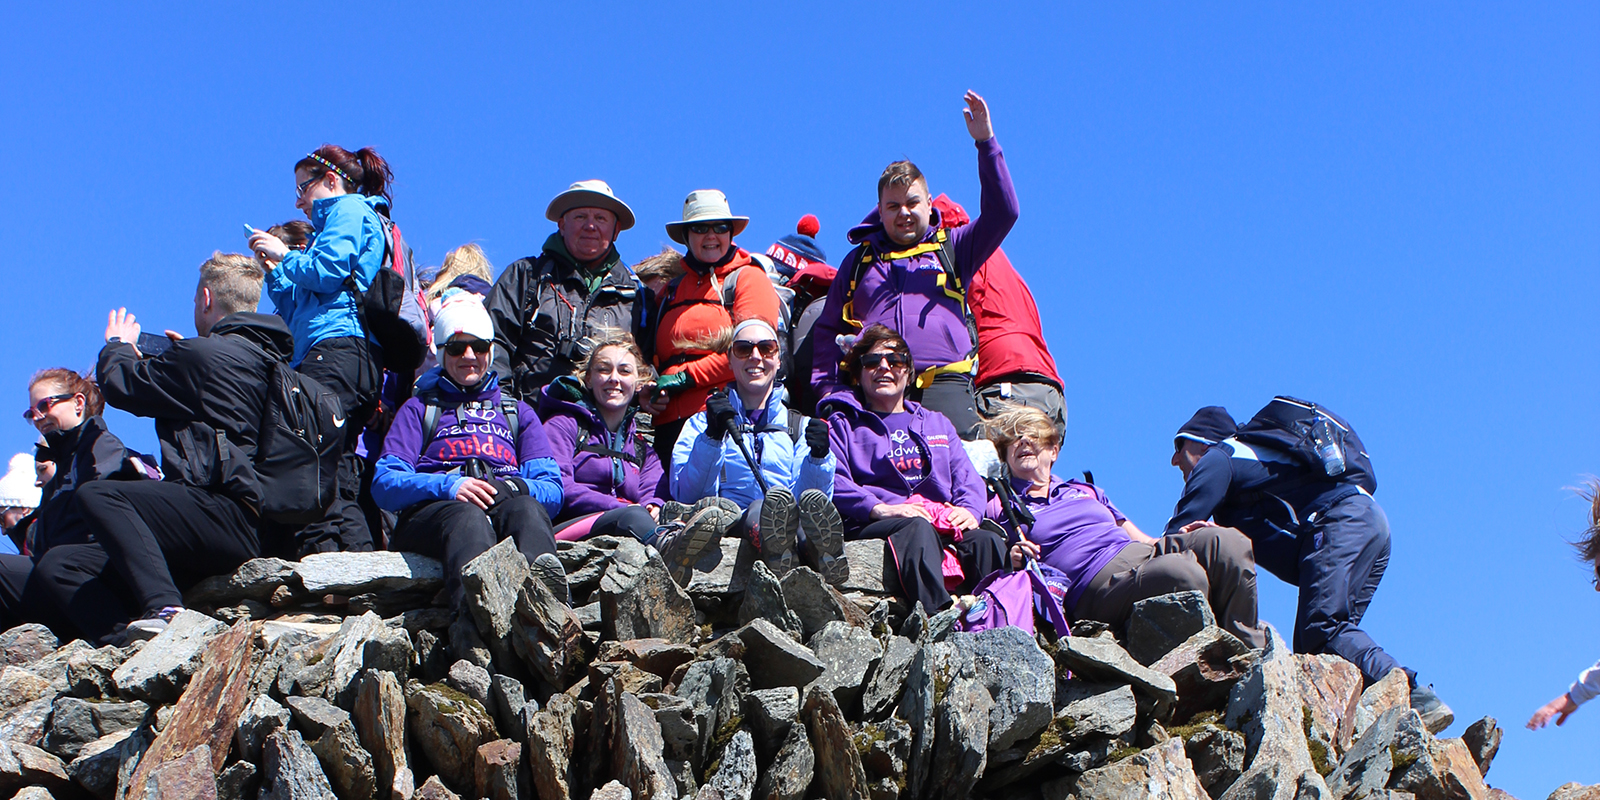 Walkers at the top of Scafell Pike